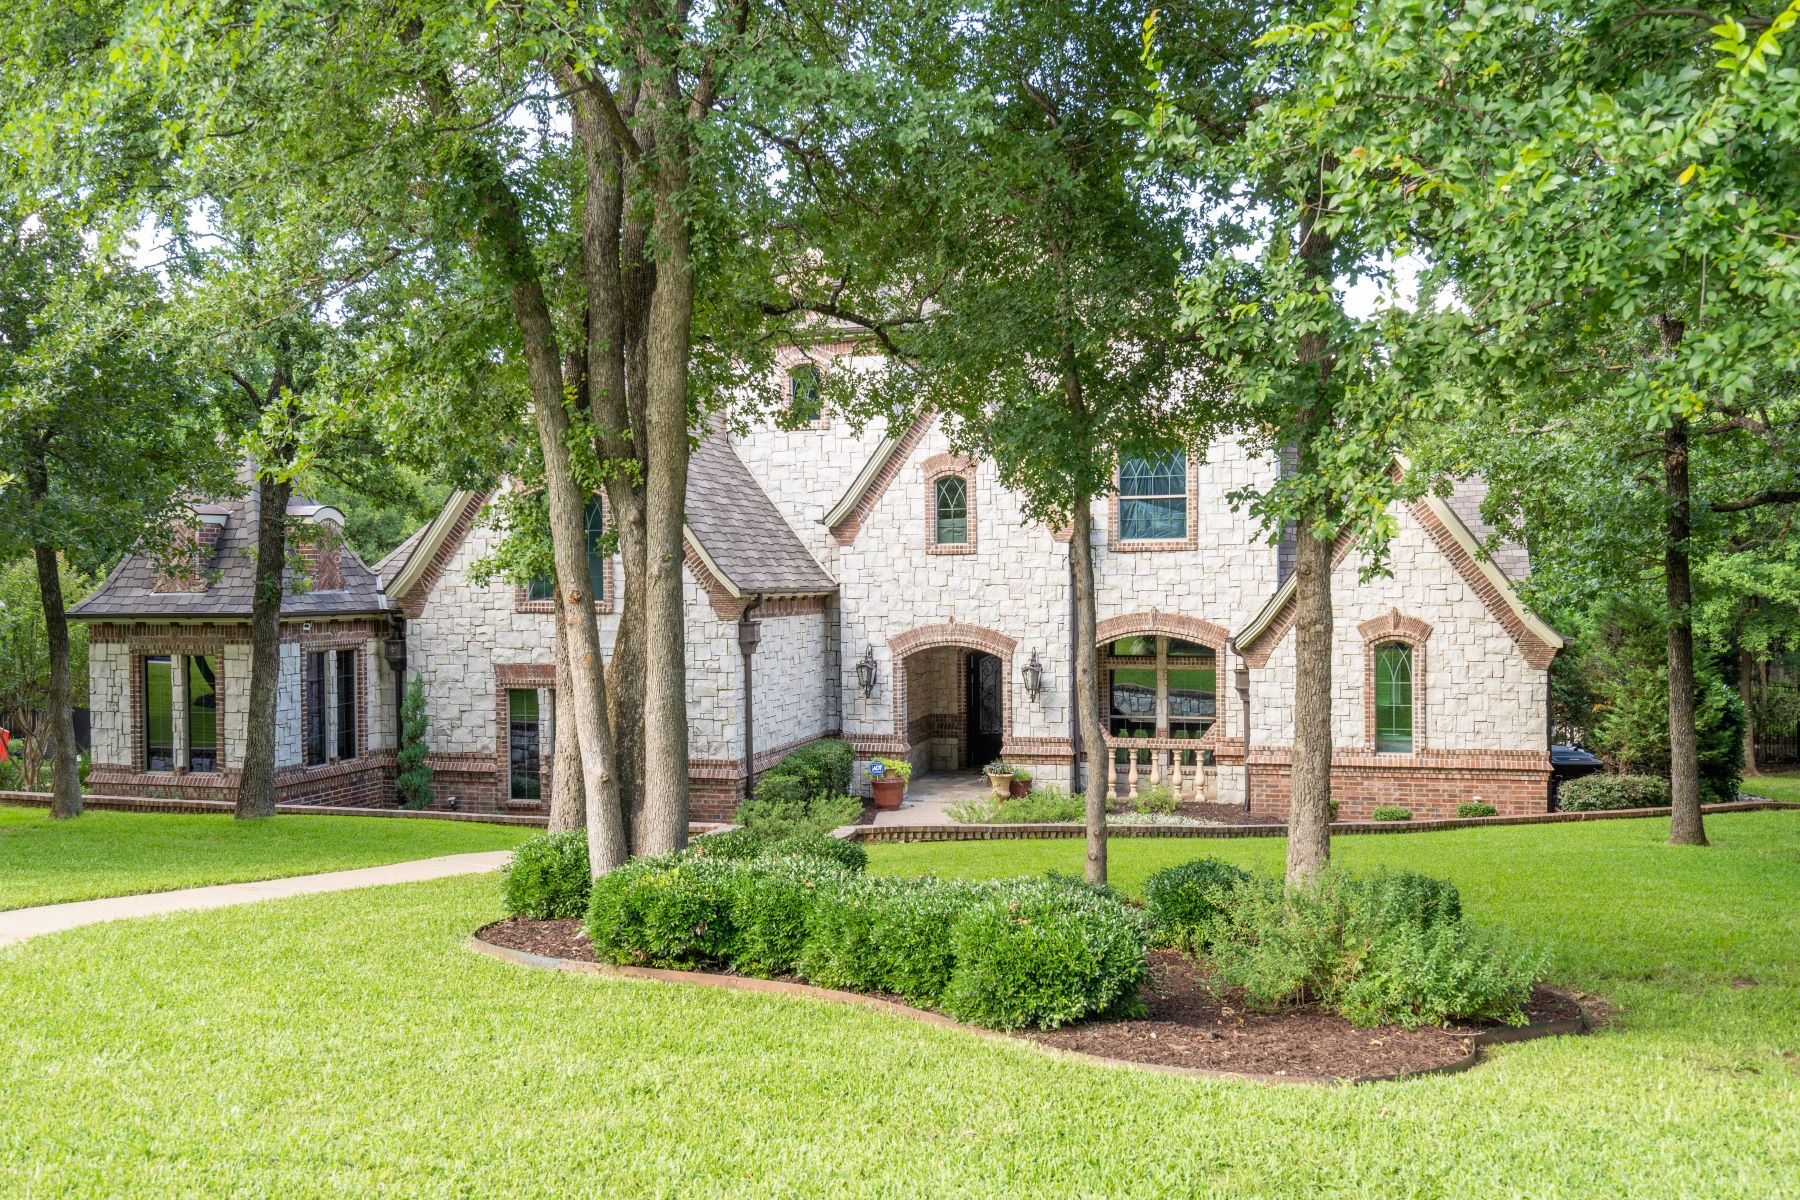 Single Family Homes for Sale at Stunning Home with No Expense Spared 841 Simmons Court Southlake, Texas 76092 United States